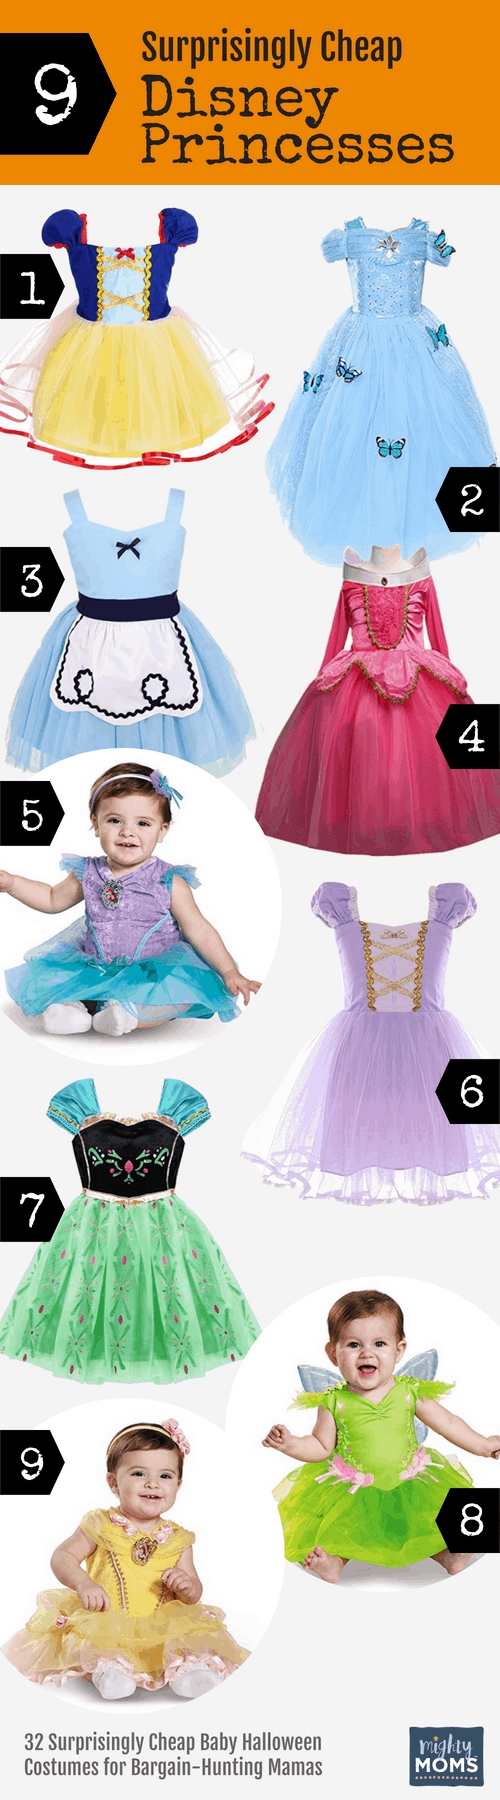 Cheap Disney Princess Baby Halloween Costumes - MightyMoms.club